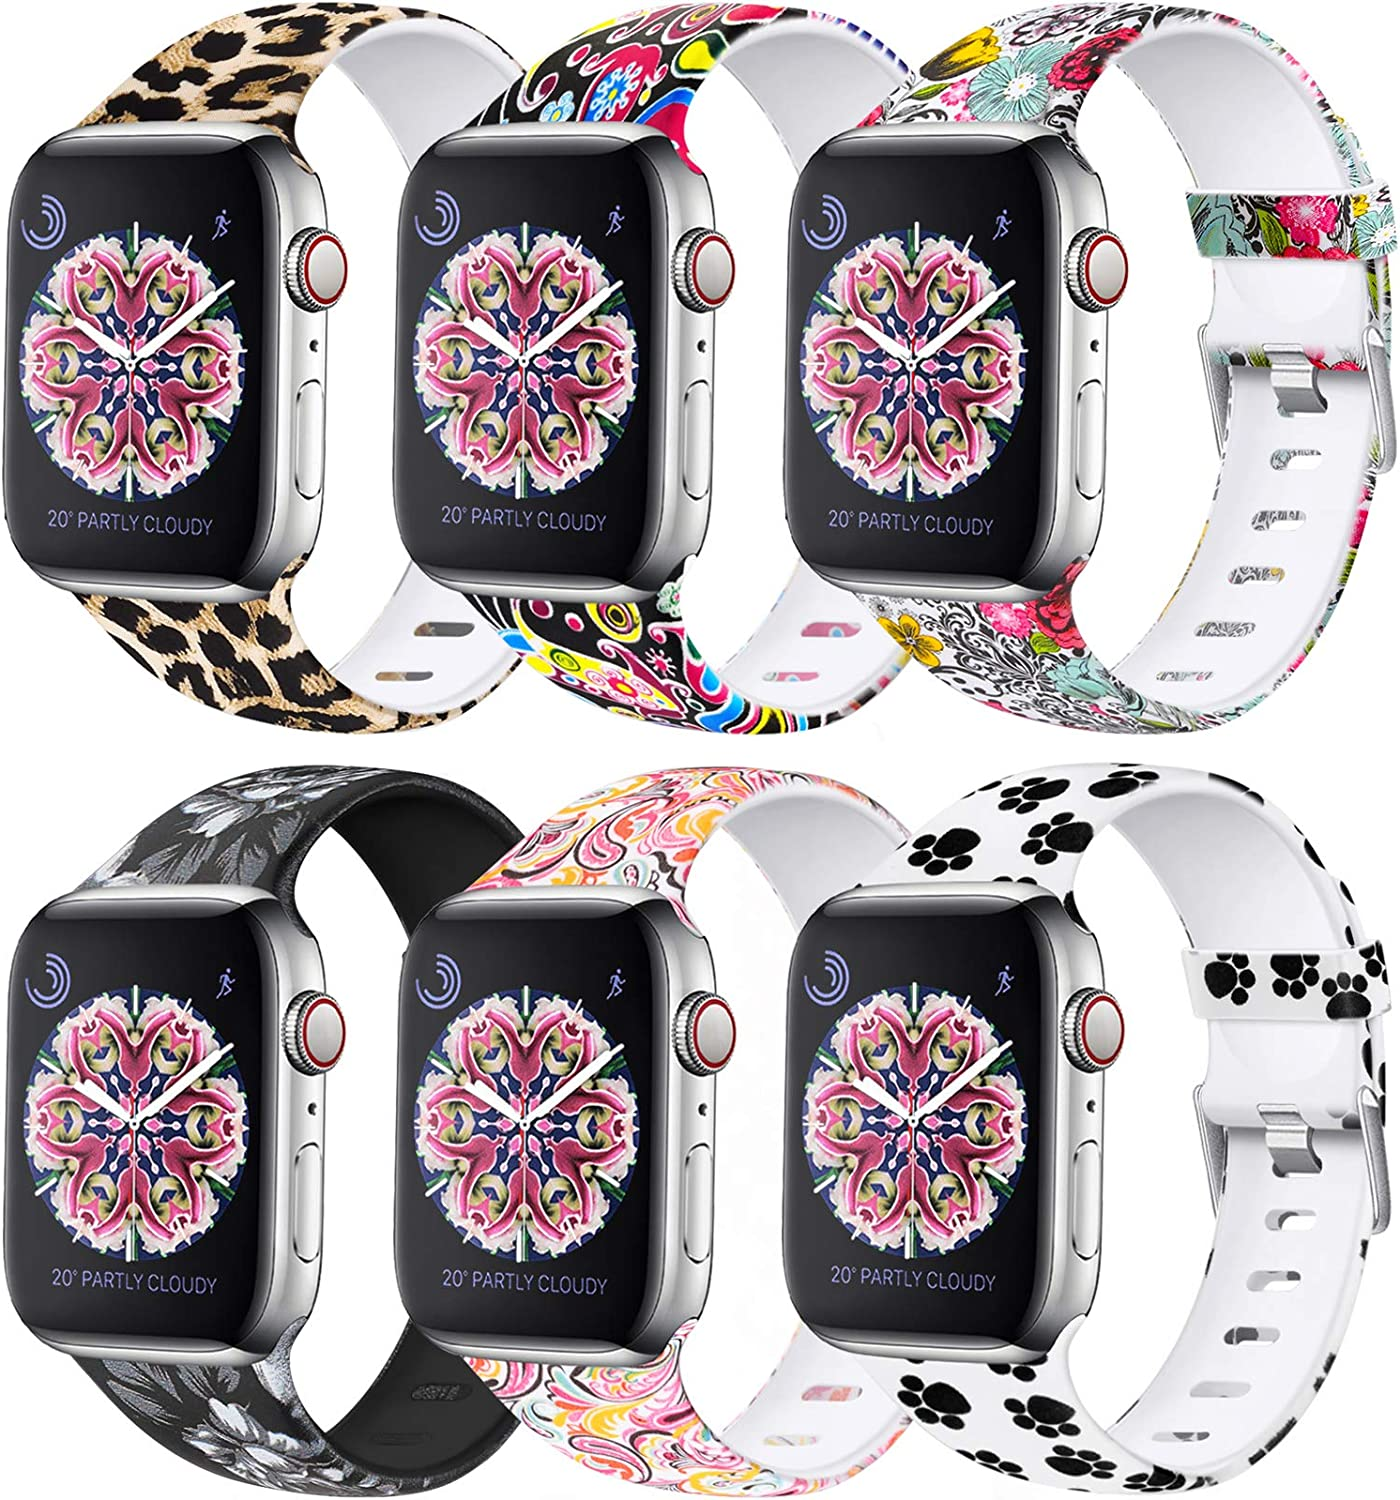 Laffav Compatible with Apple Watch Band 40mm 38mm iWatch SE & Series 6 & Series 5 4 3 2 1 for Women Men, 6 Pack, M/L